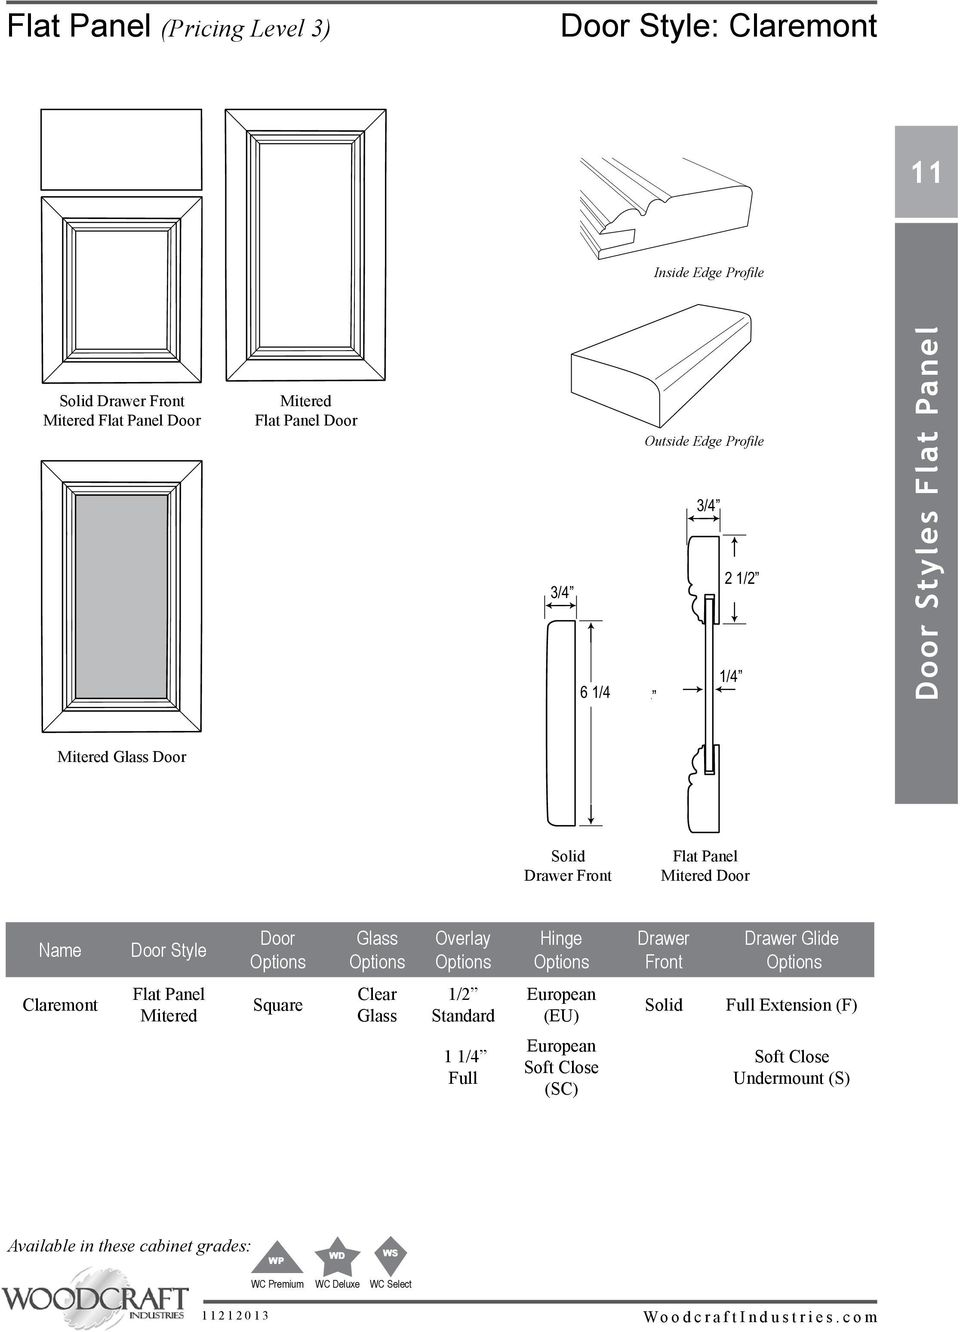 Overlay Hinge Drawer Front Drawer Glide Claremont Flat Panel Mitered Square Clear Glass 1/2 Standard European (EU) Solid Full Extension (F) 1 1/4 Full European Soft